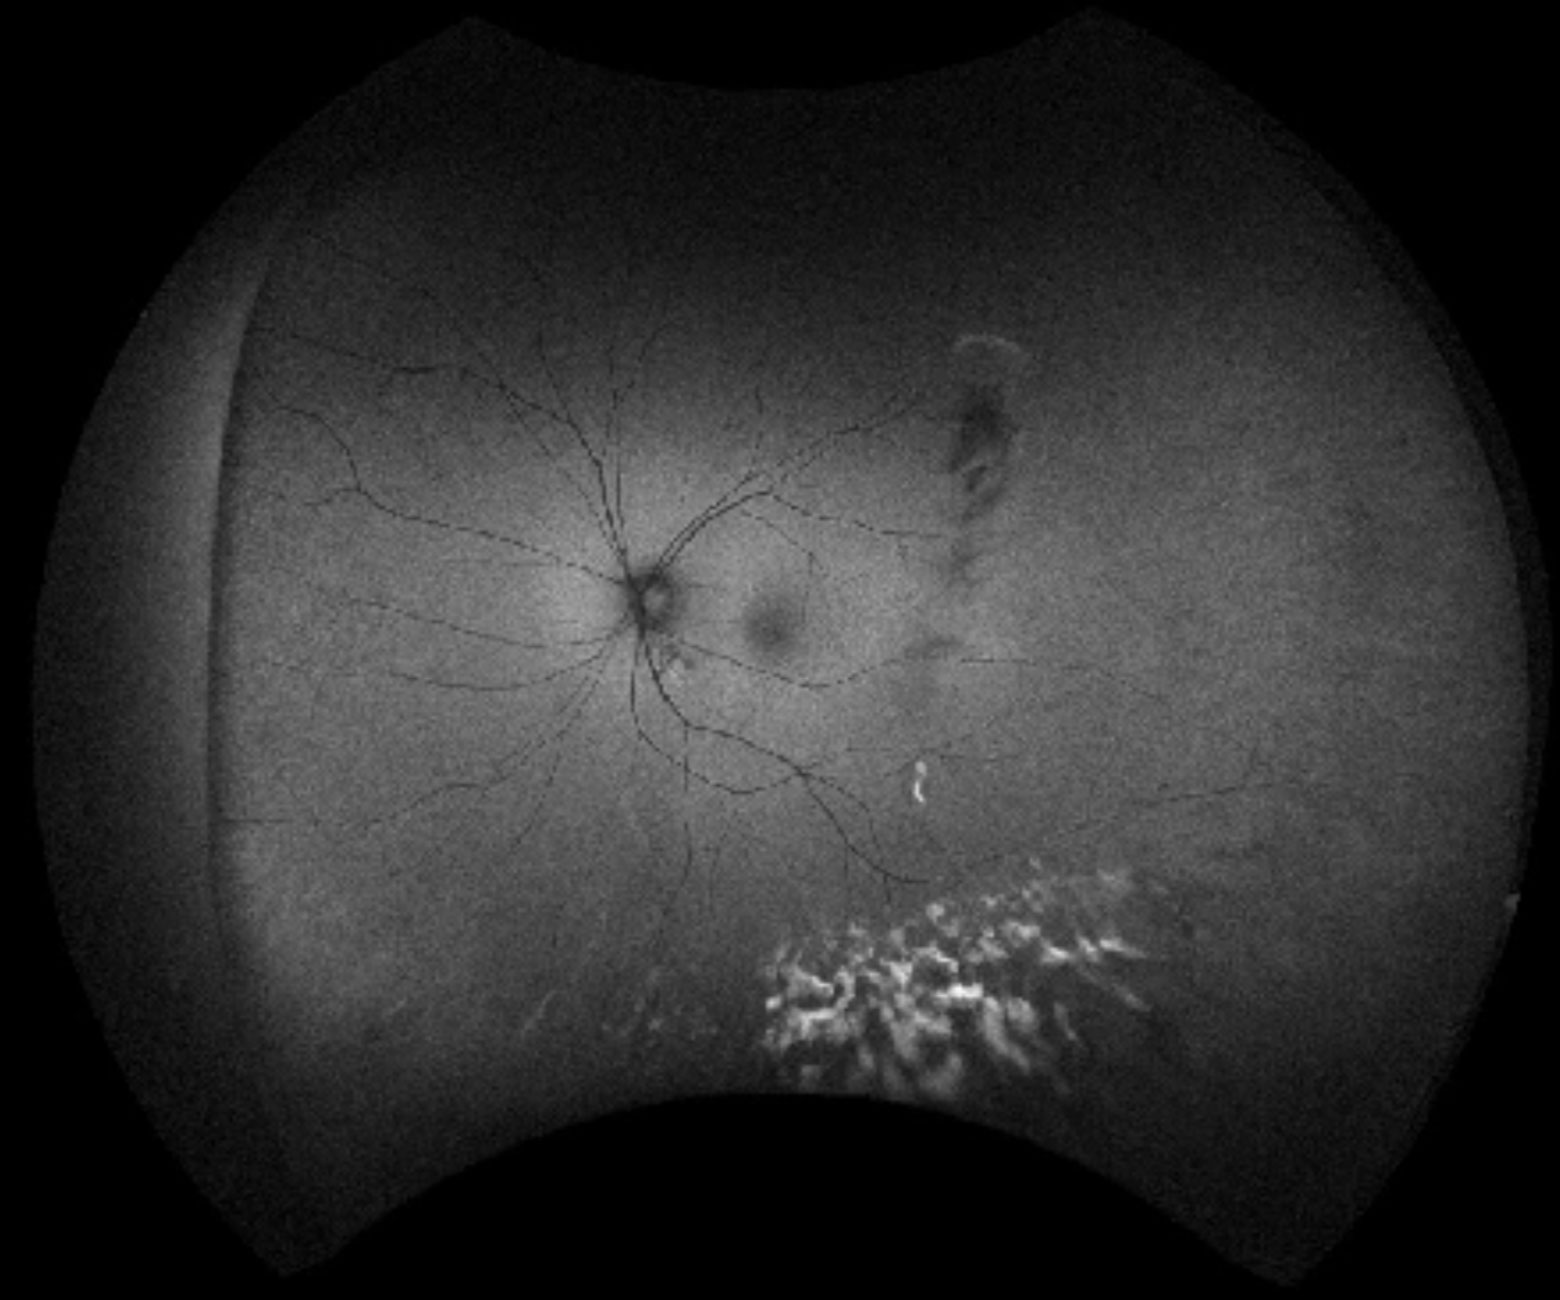 Indocyanine green angiography shows multiple hypofluorescent spots.